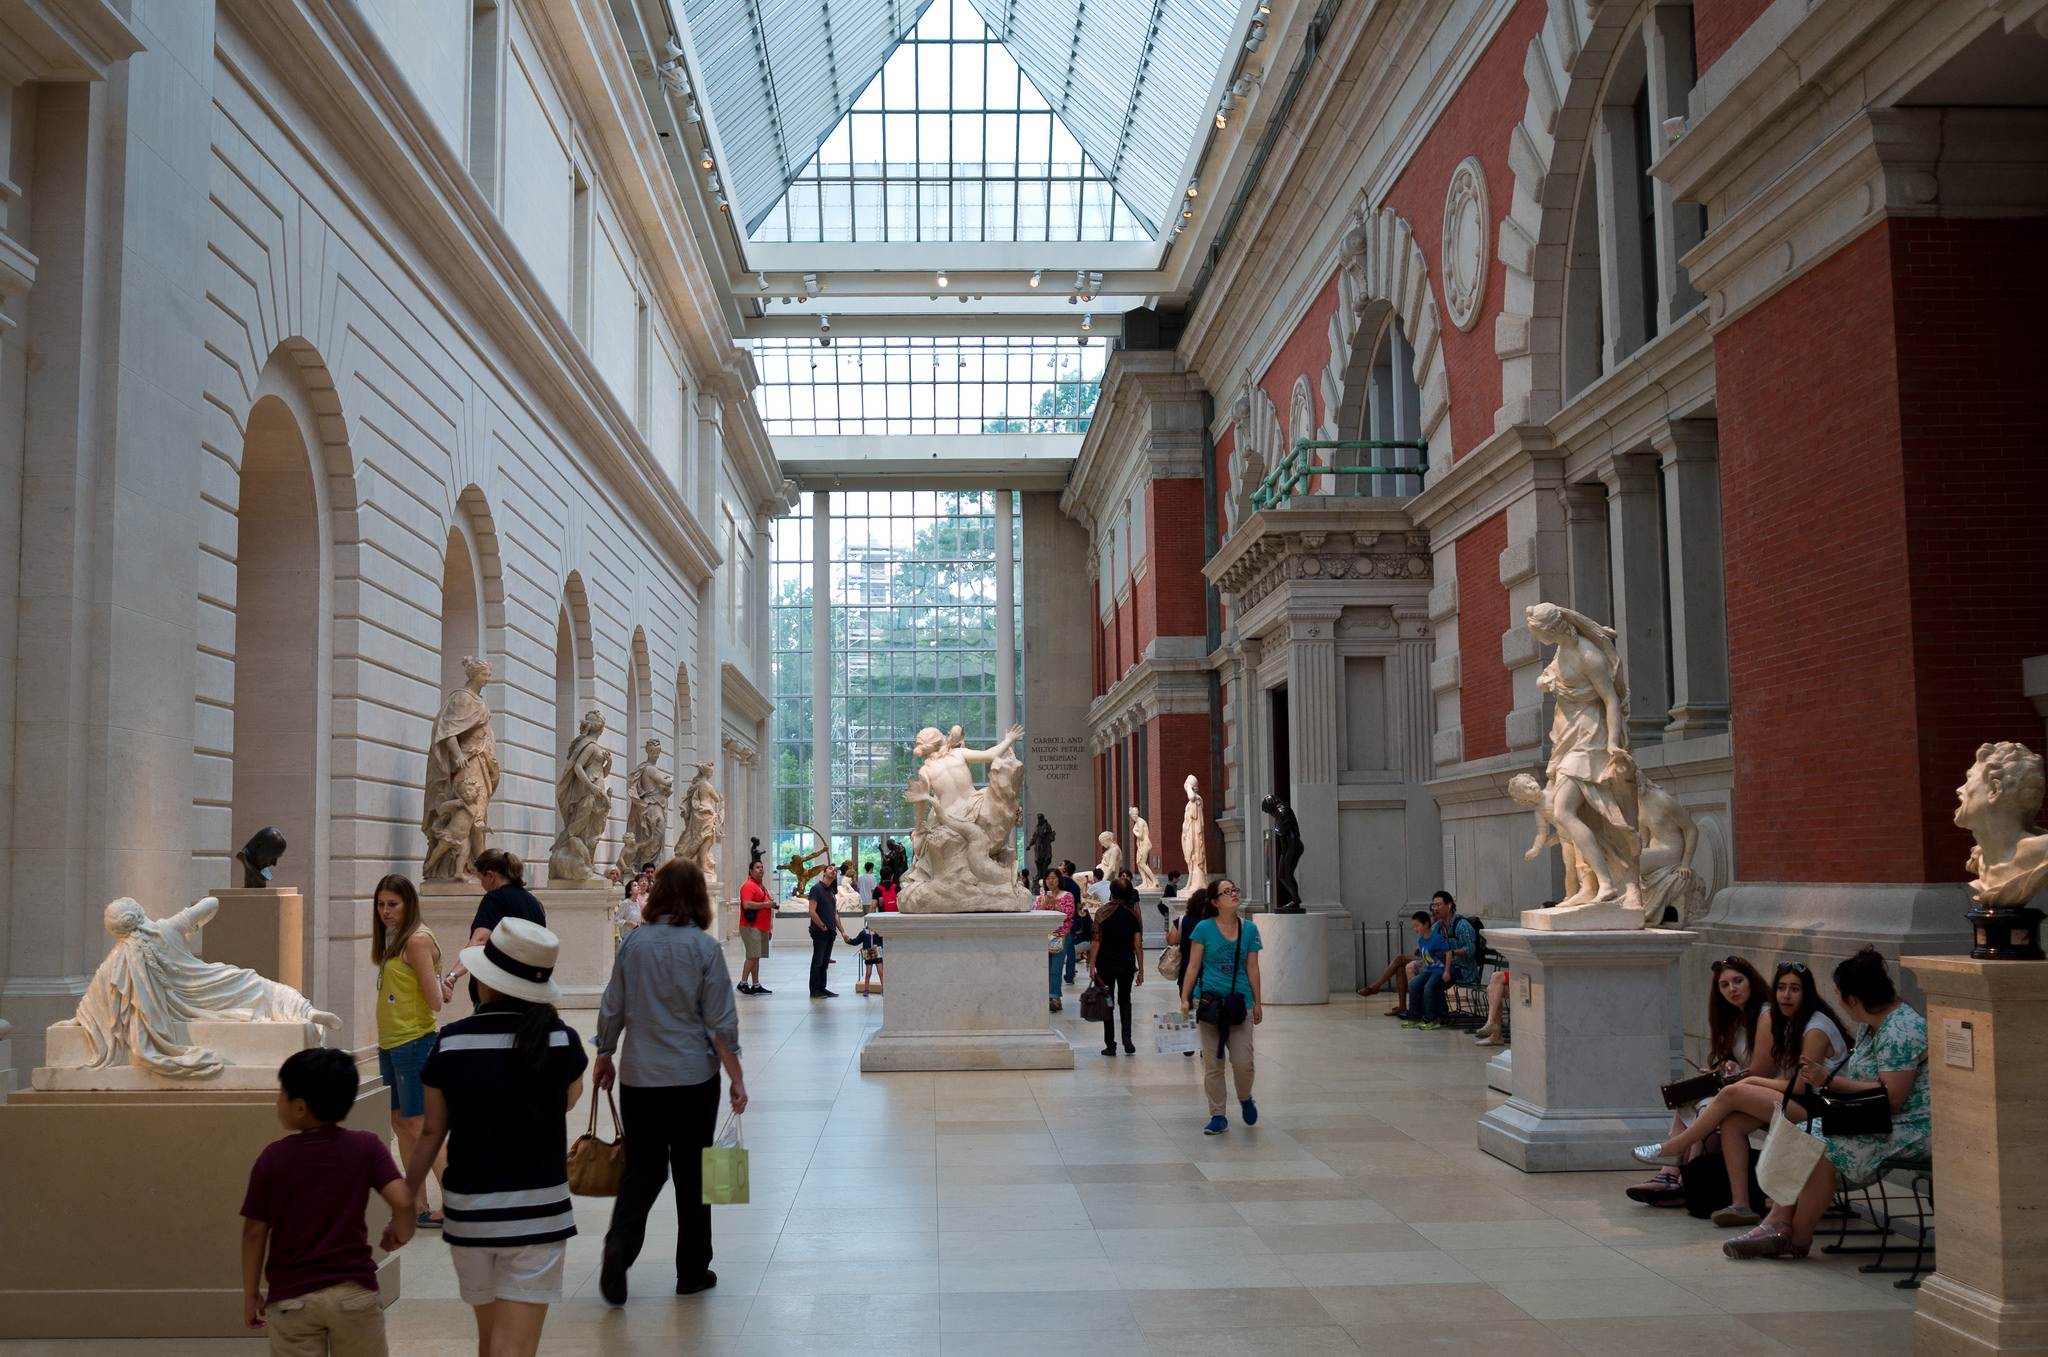 In financial crisis the met delays 600 m contemporary for Metropolitan museum of art exhibitions